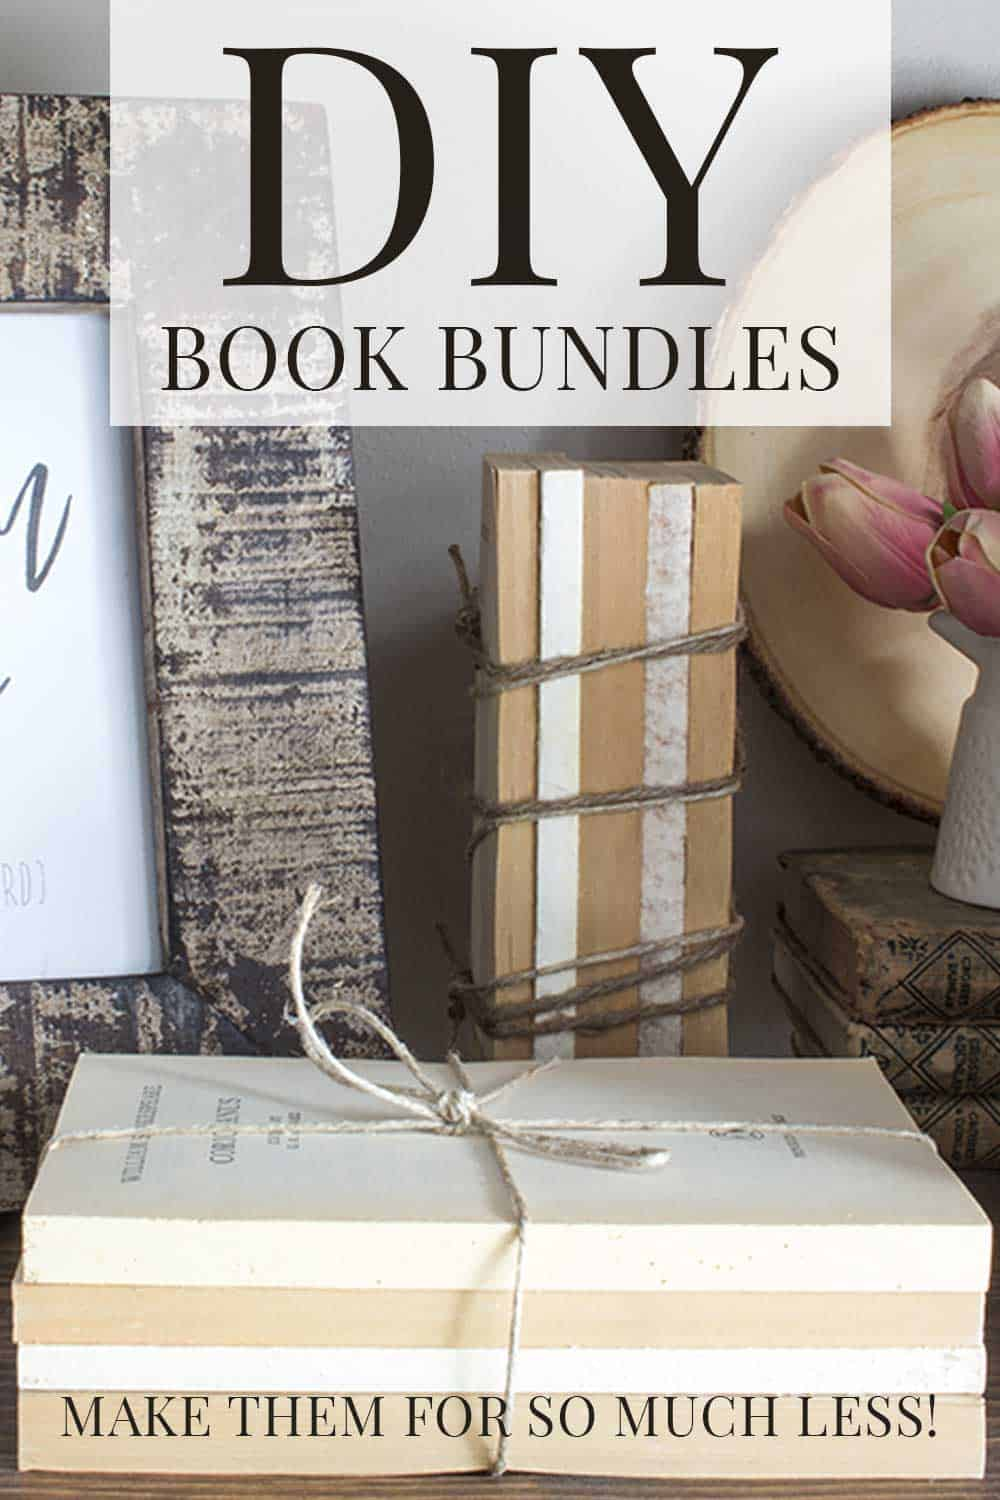 framed art print, thrifted book bundles, coverless books tied with twine